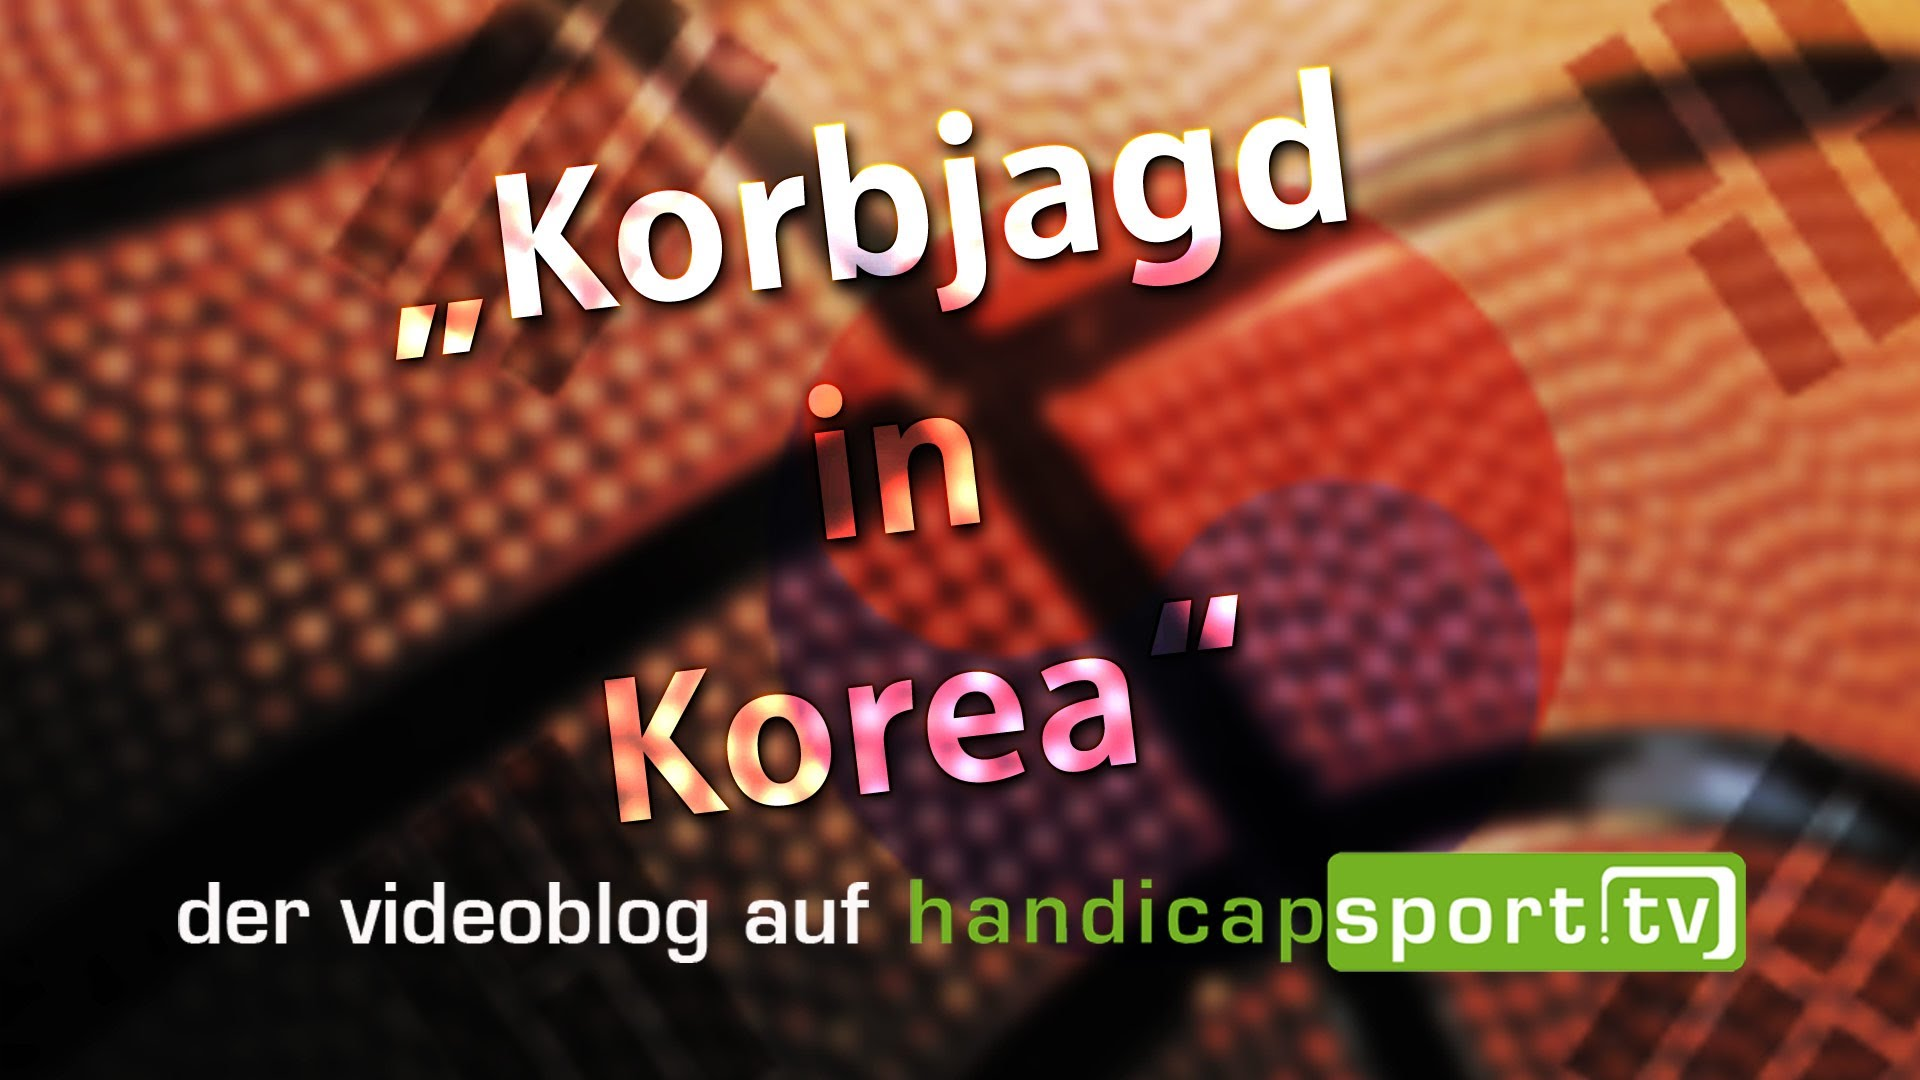 korbjagd-in-korea-2-frohes-fest2